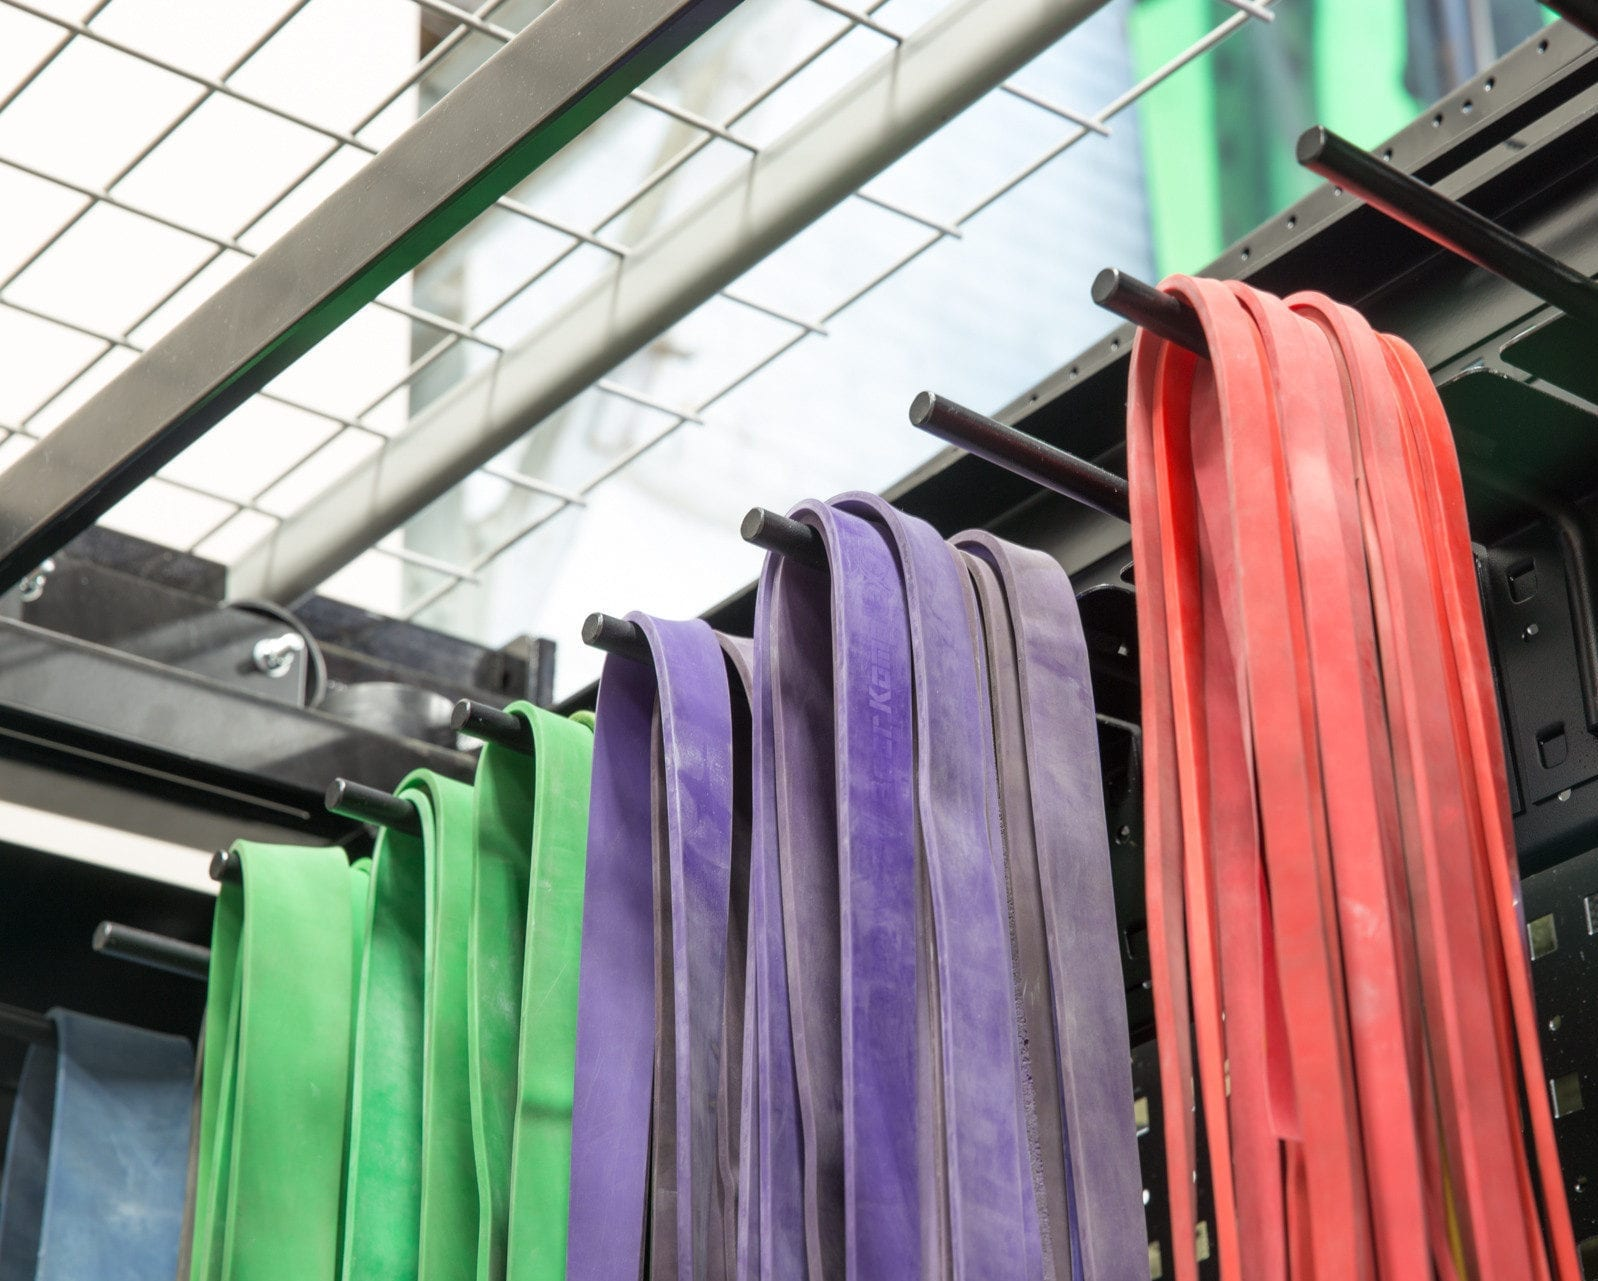 resistance bands in athletic storage equipment room